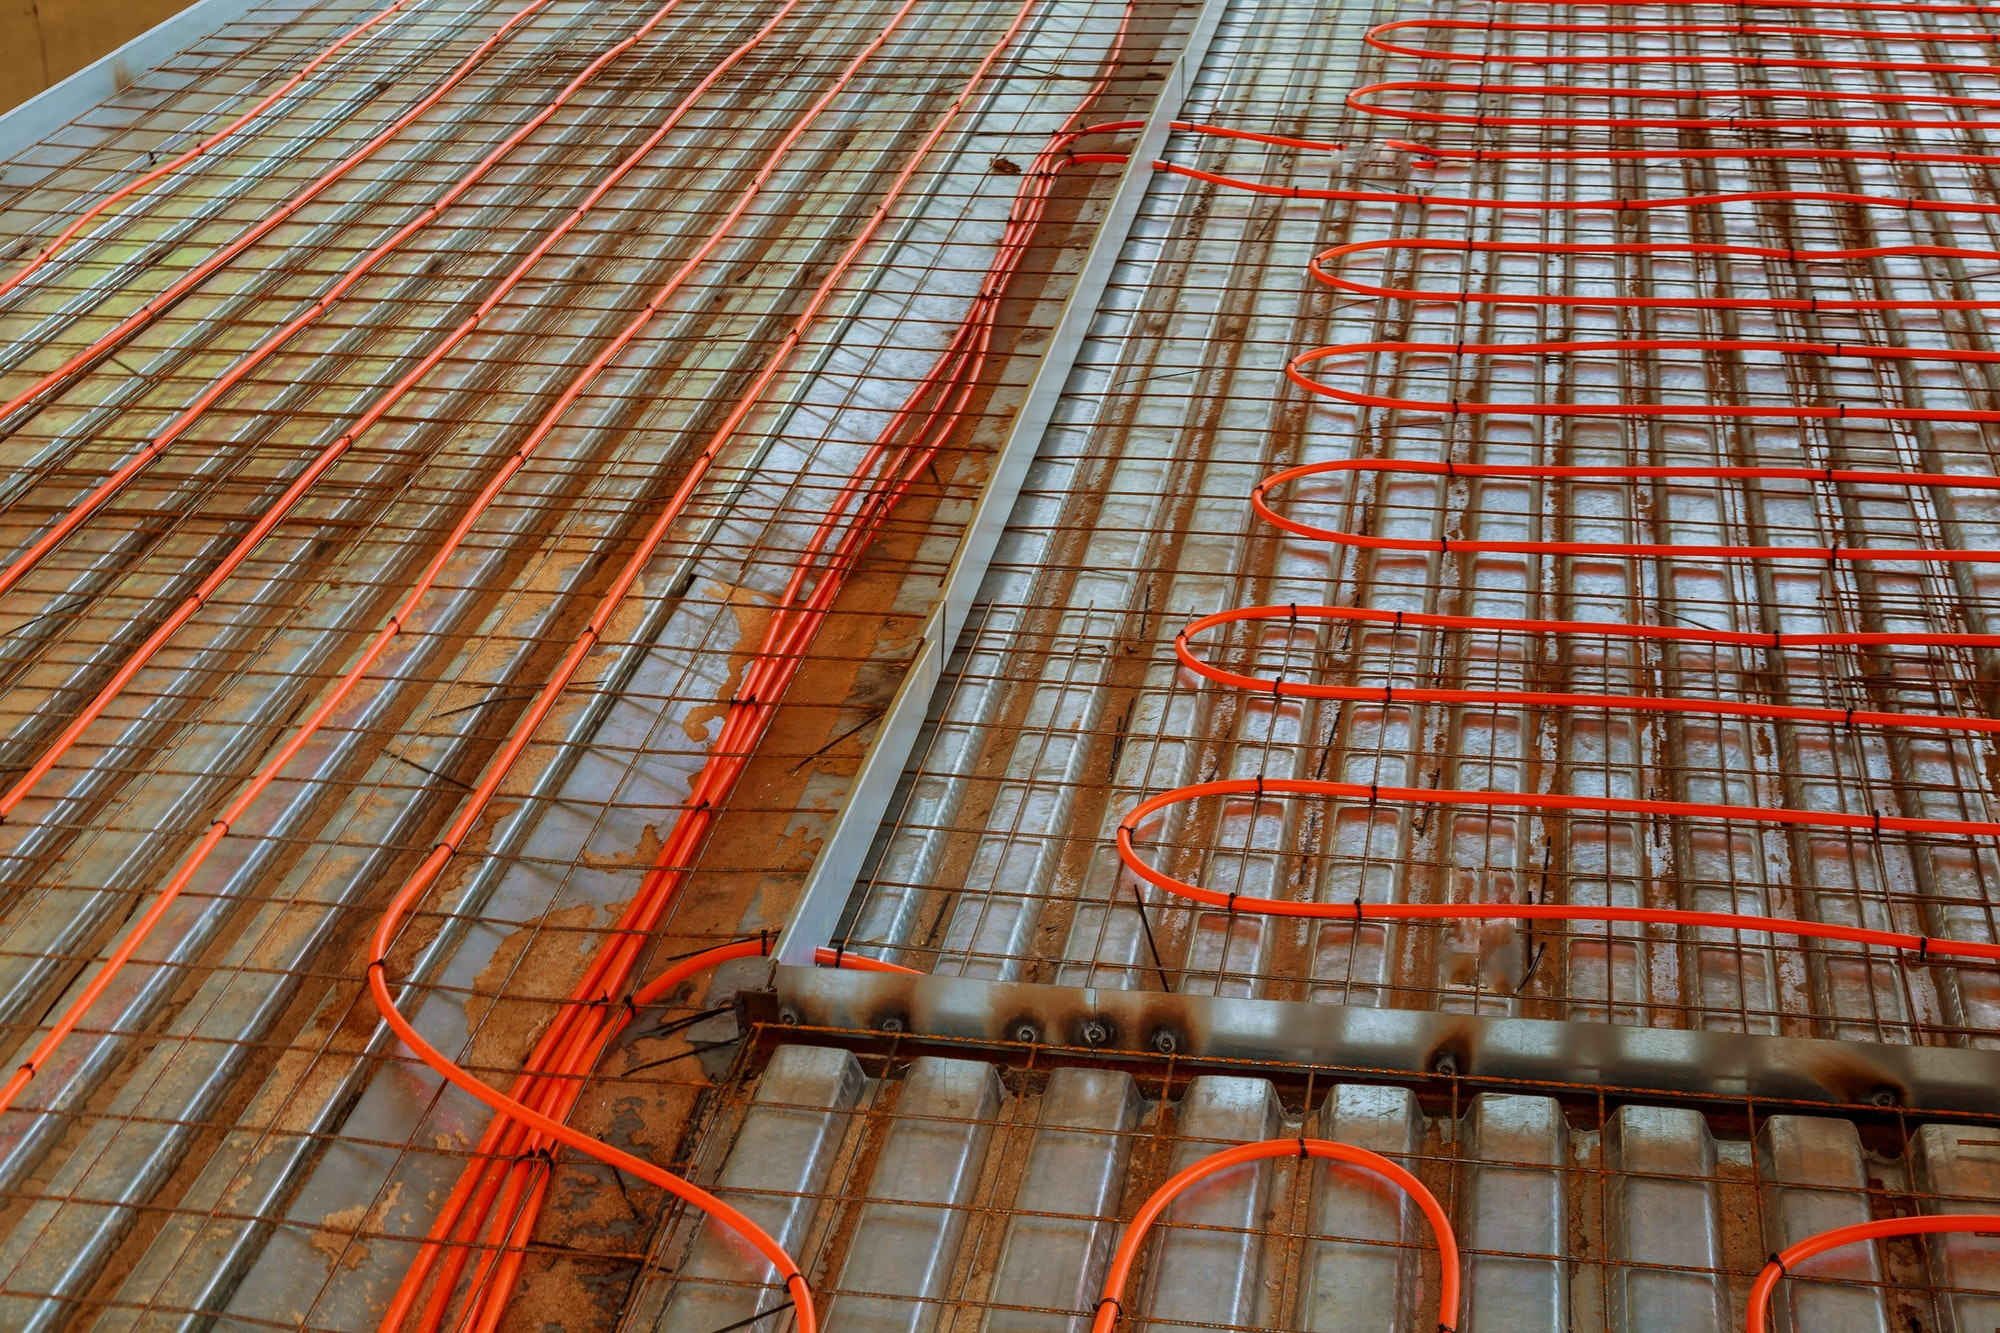 New floor heating system Pipes and heating system at house construction site